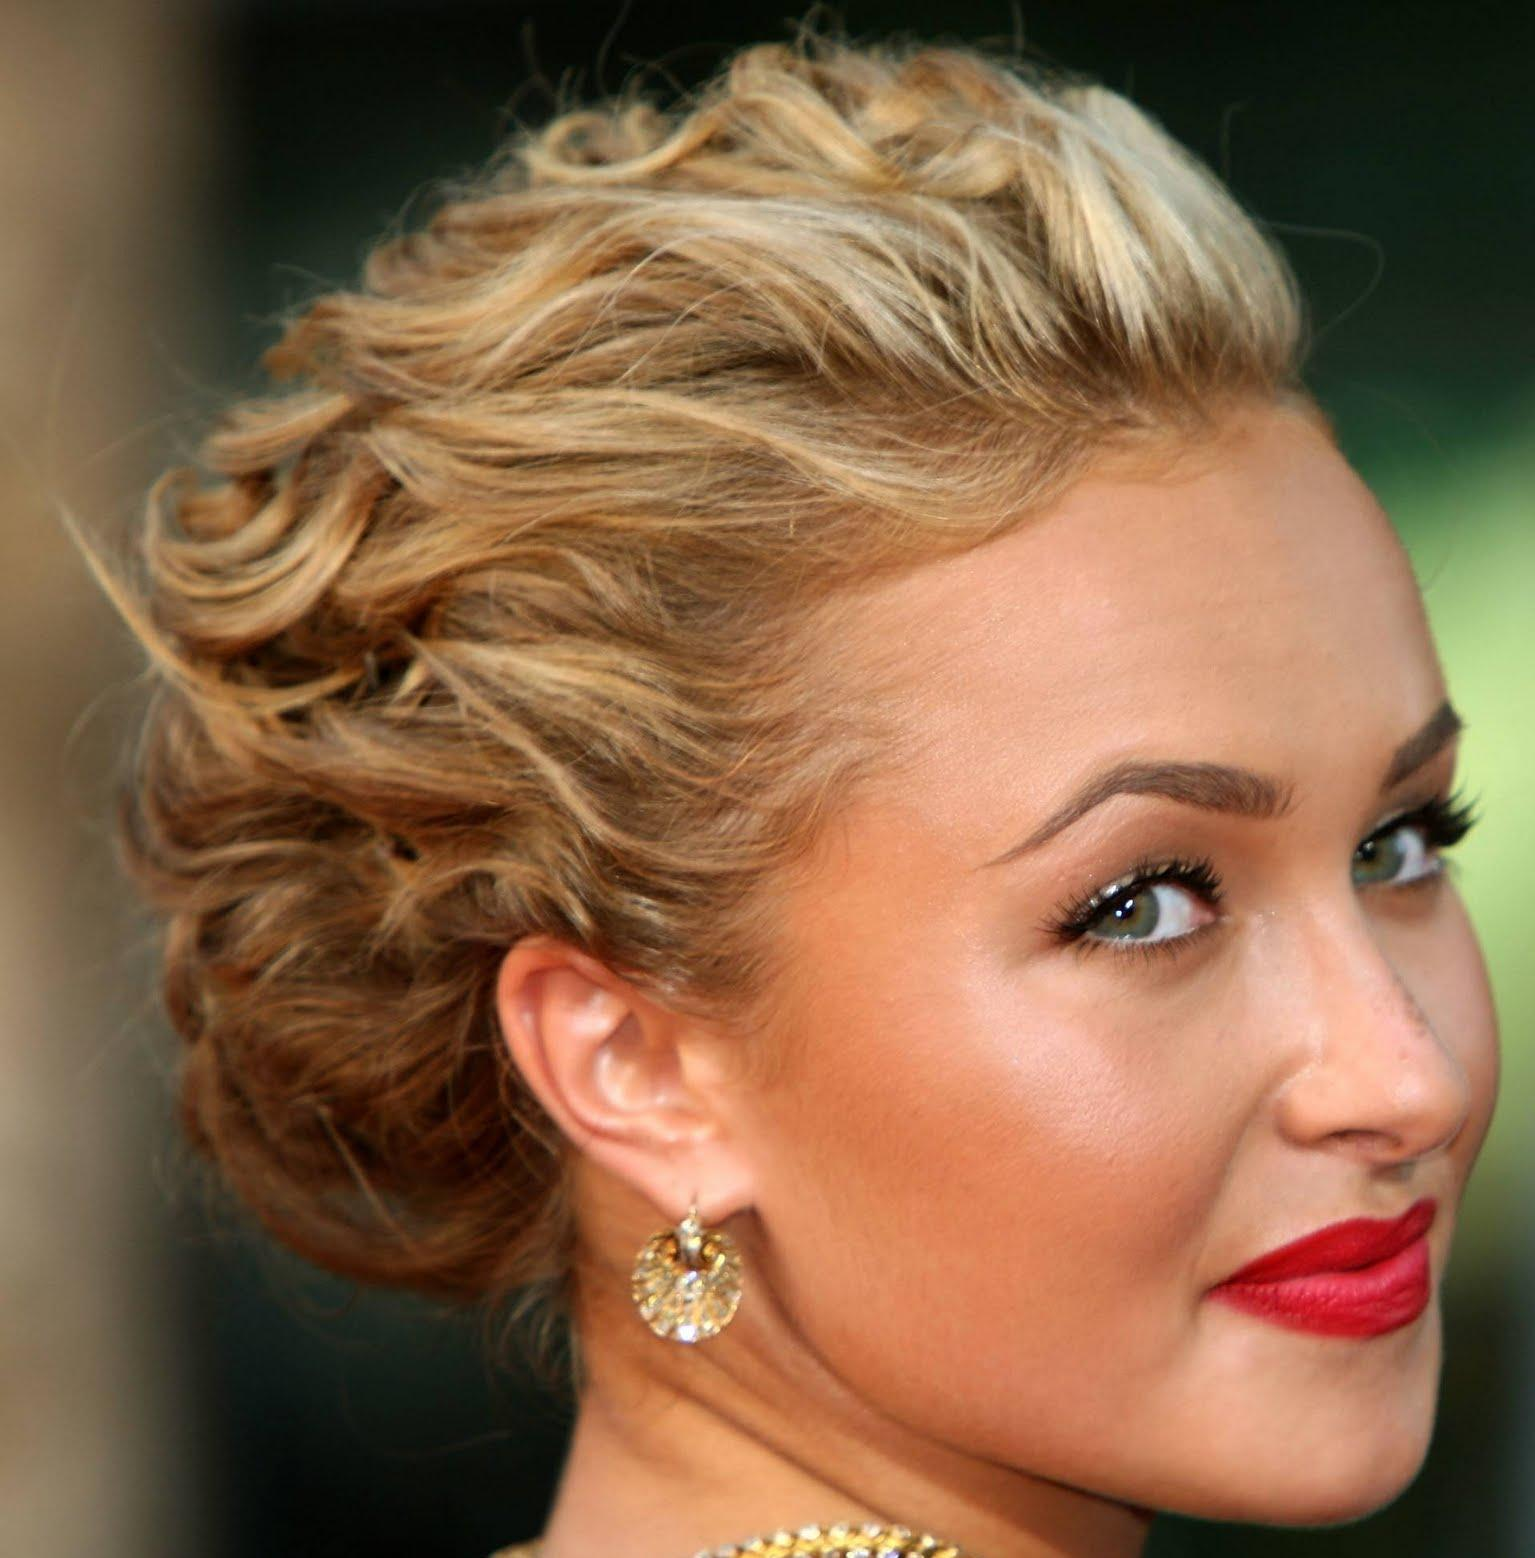 11 Elegant And Effective Prom Hairstyles For Girls With Thin Hair HairStyles Woman